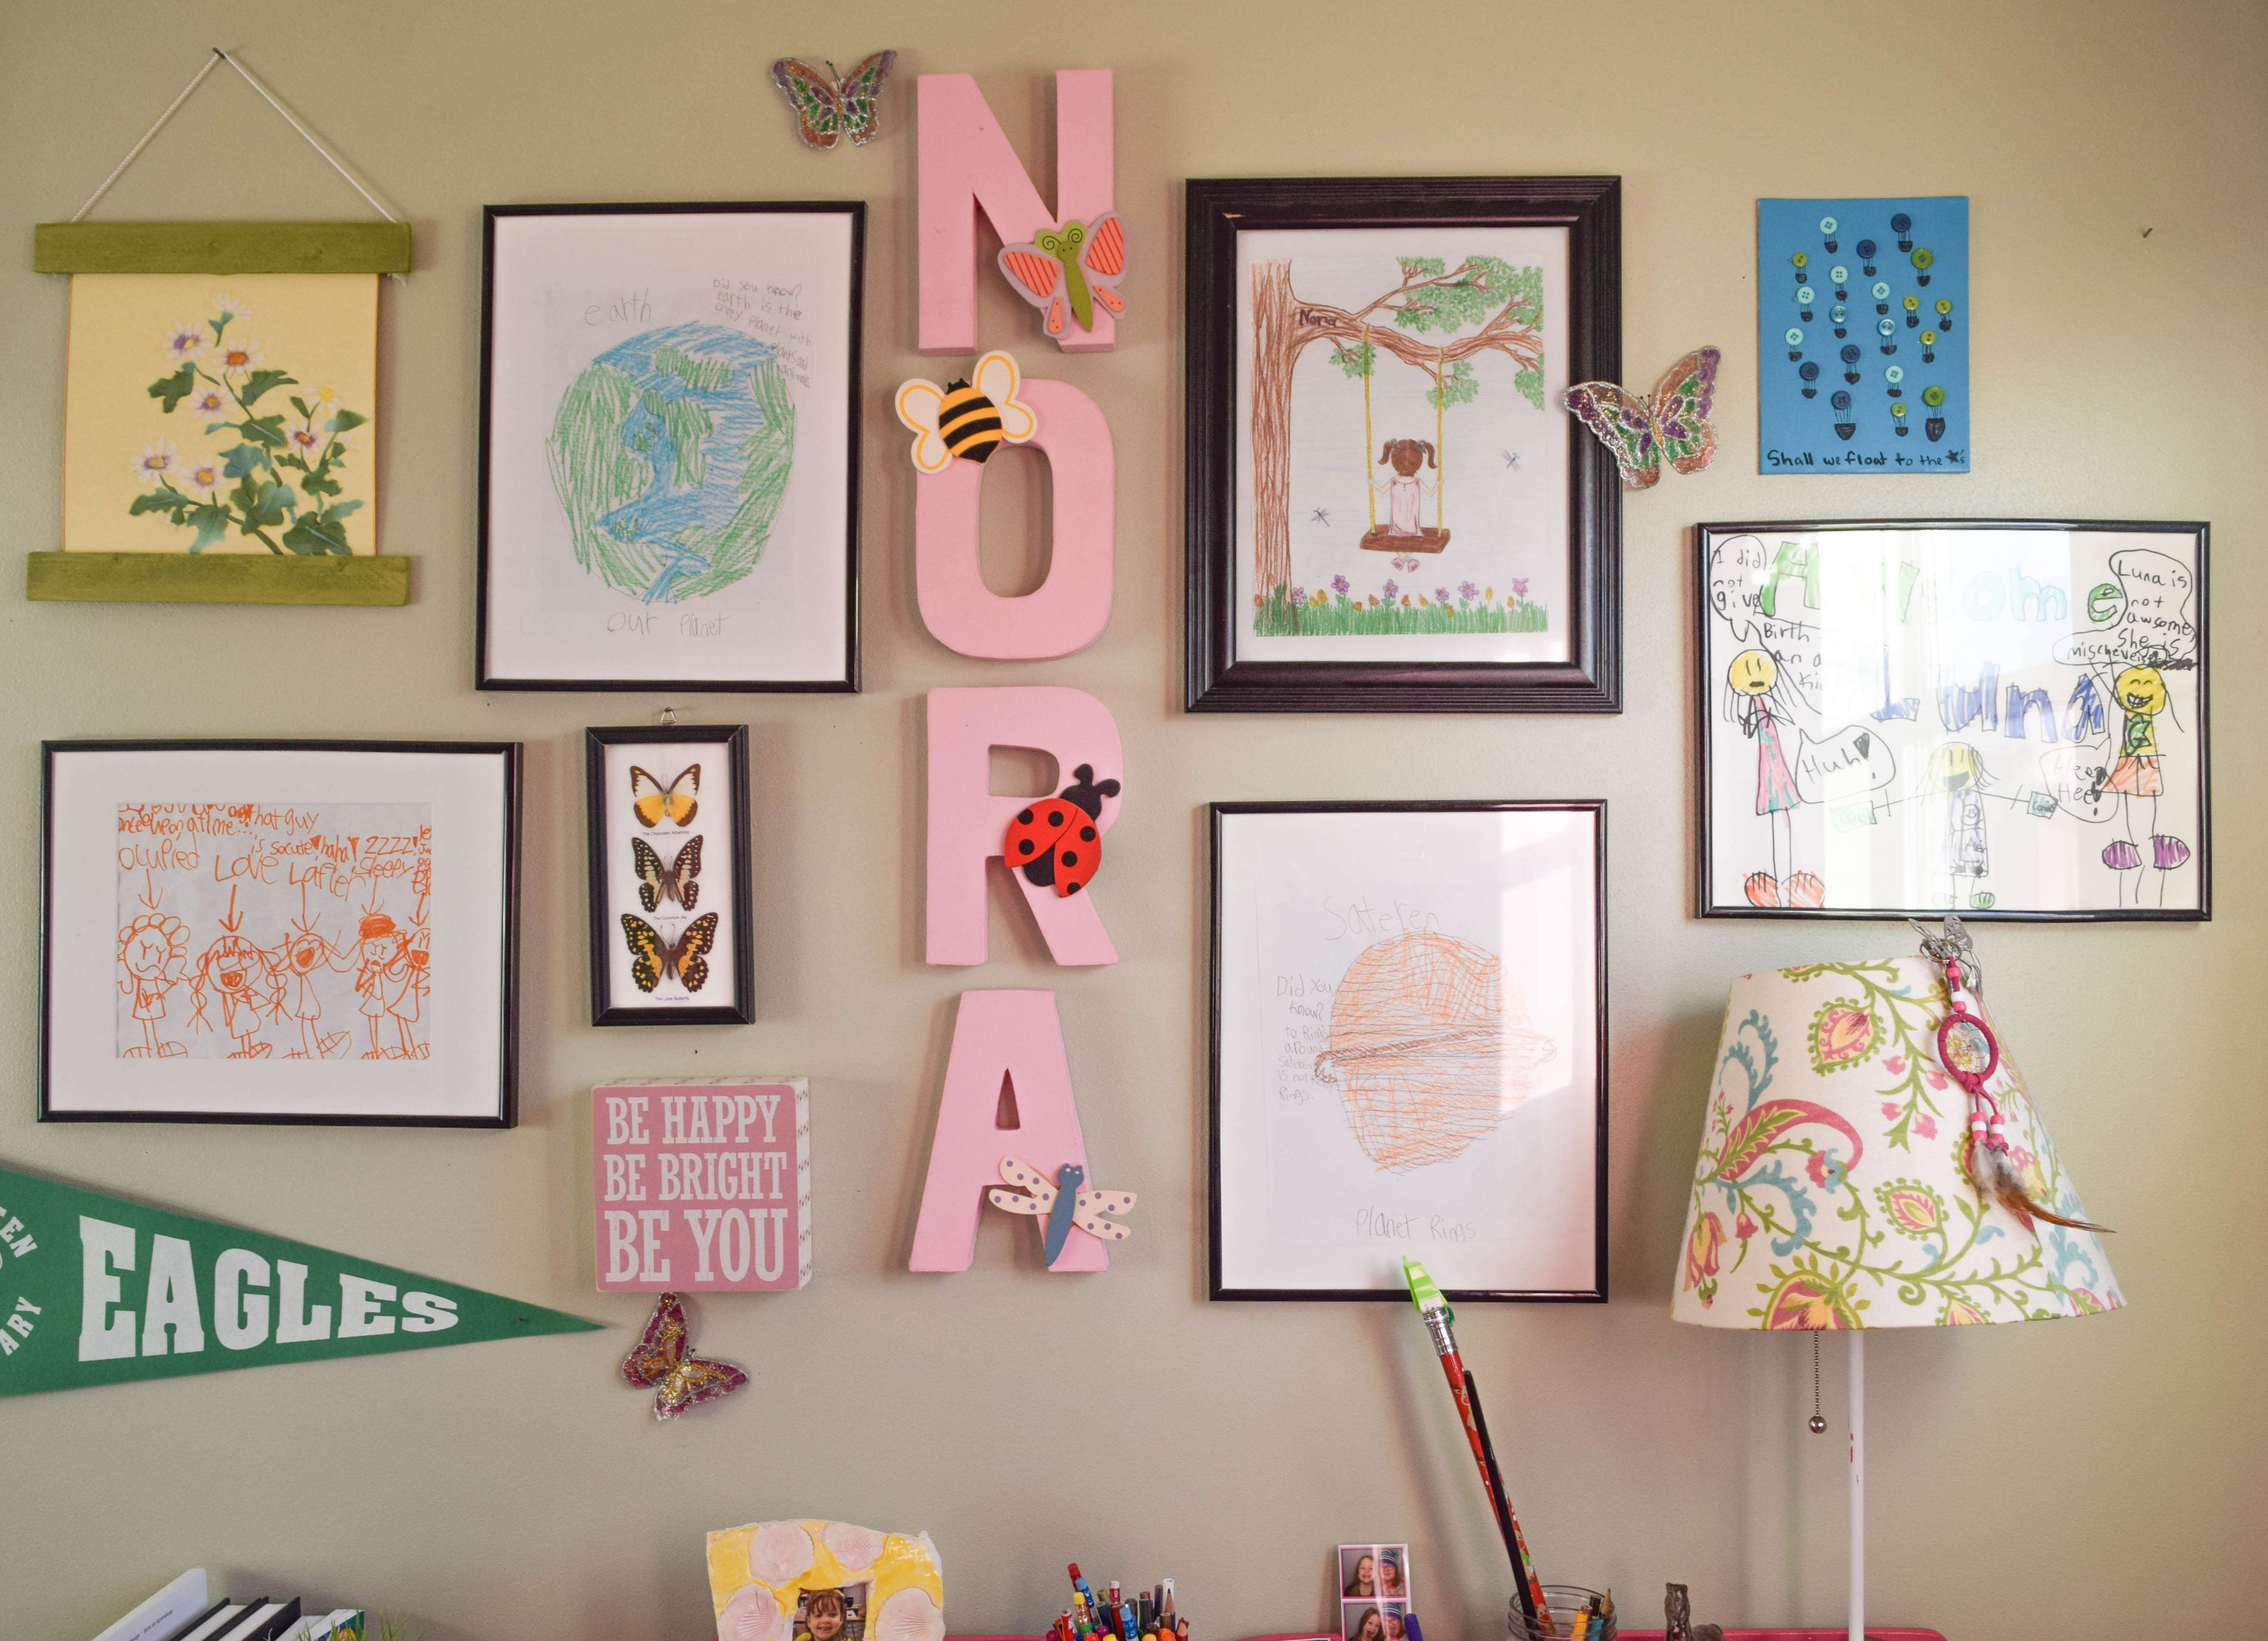 Kids Bedroom Gallery how to personalize a gallery wall for a kid's space • our house